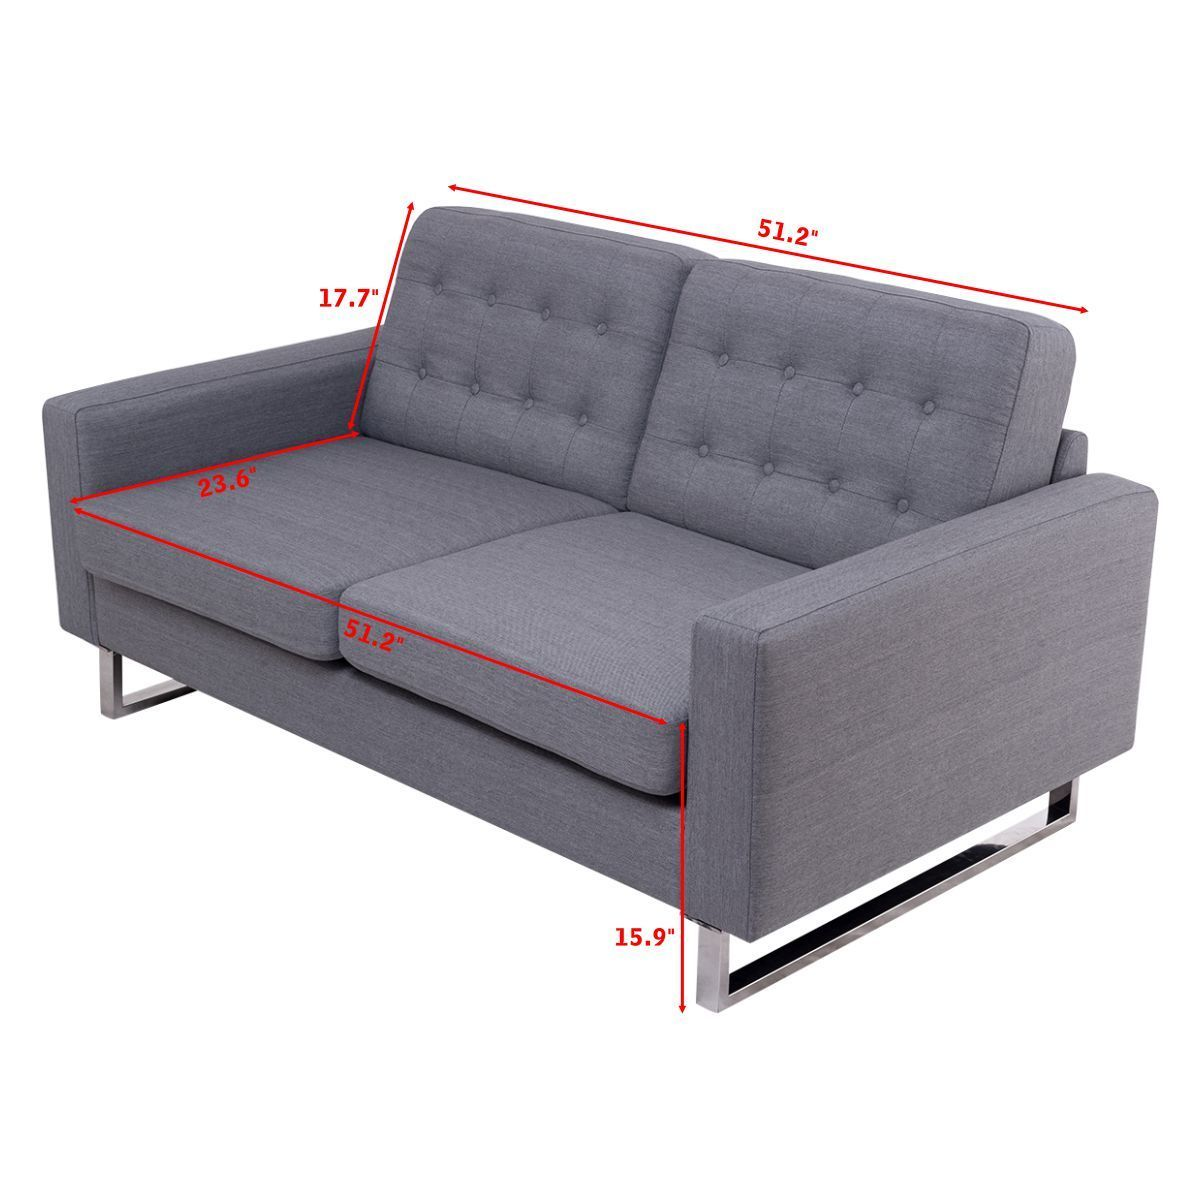 Giantex 2 Seat Sofa Couch Home Office Modern Loveseat Fabric Upholstered Tufted Luxury Sofas Living Room Furniture Hw56261 In From